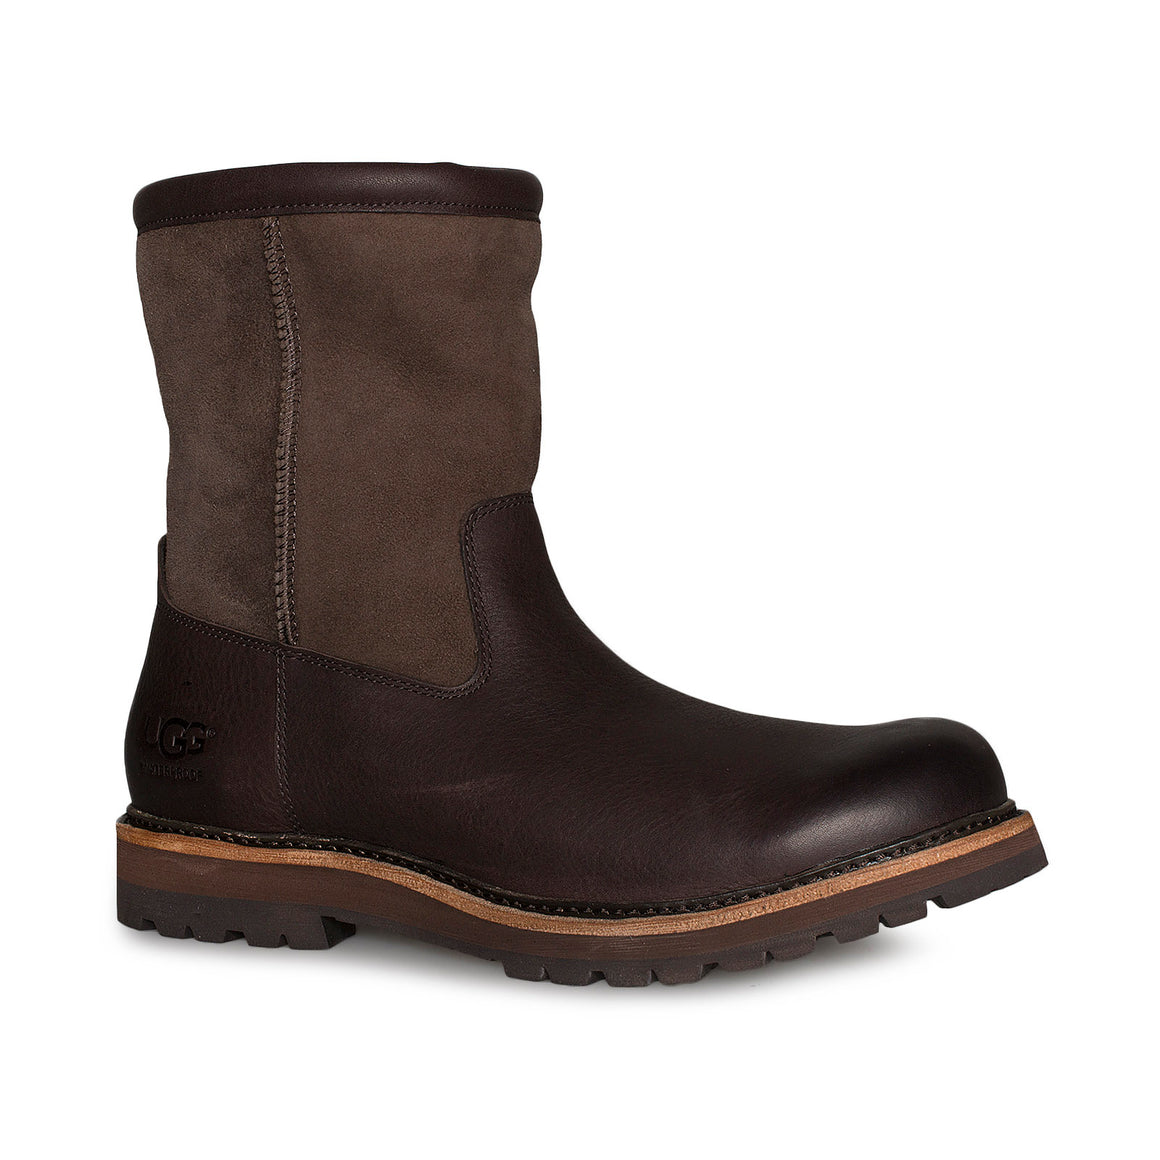 79d36843844 Men's Winter Boots - MyCozyBoots